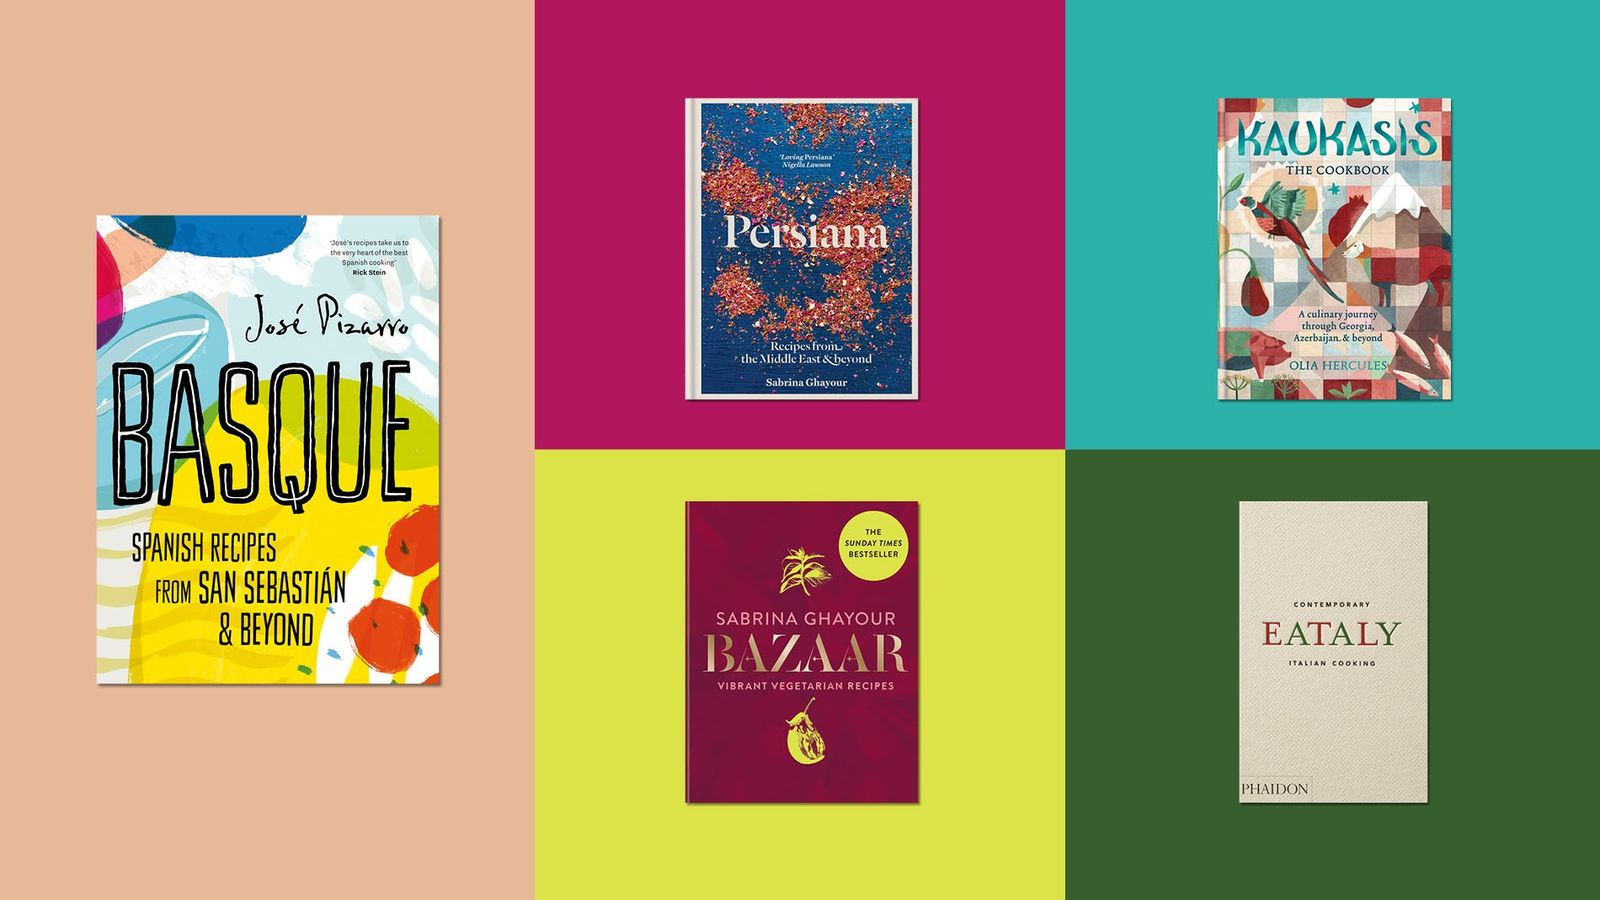 Some of our favourite cookbooks, from Basque by José Pizarro to Kaukasis by Olia Hercules.